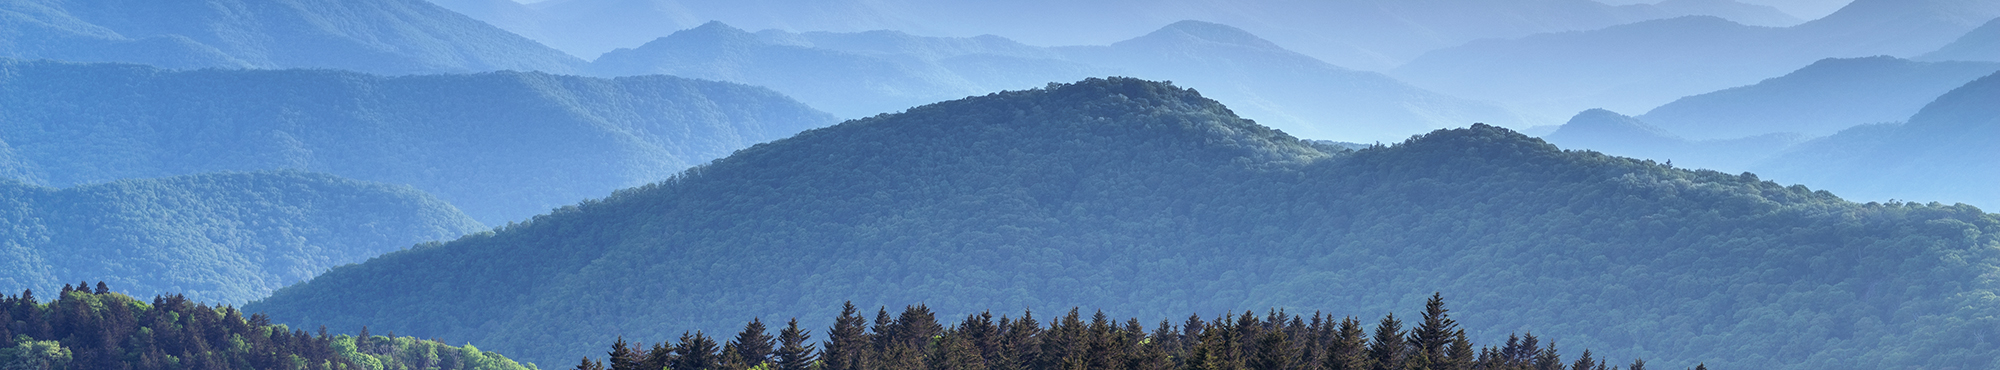 Things to Do in the Smoky Mountains